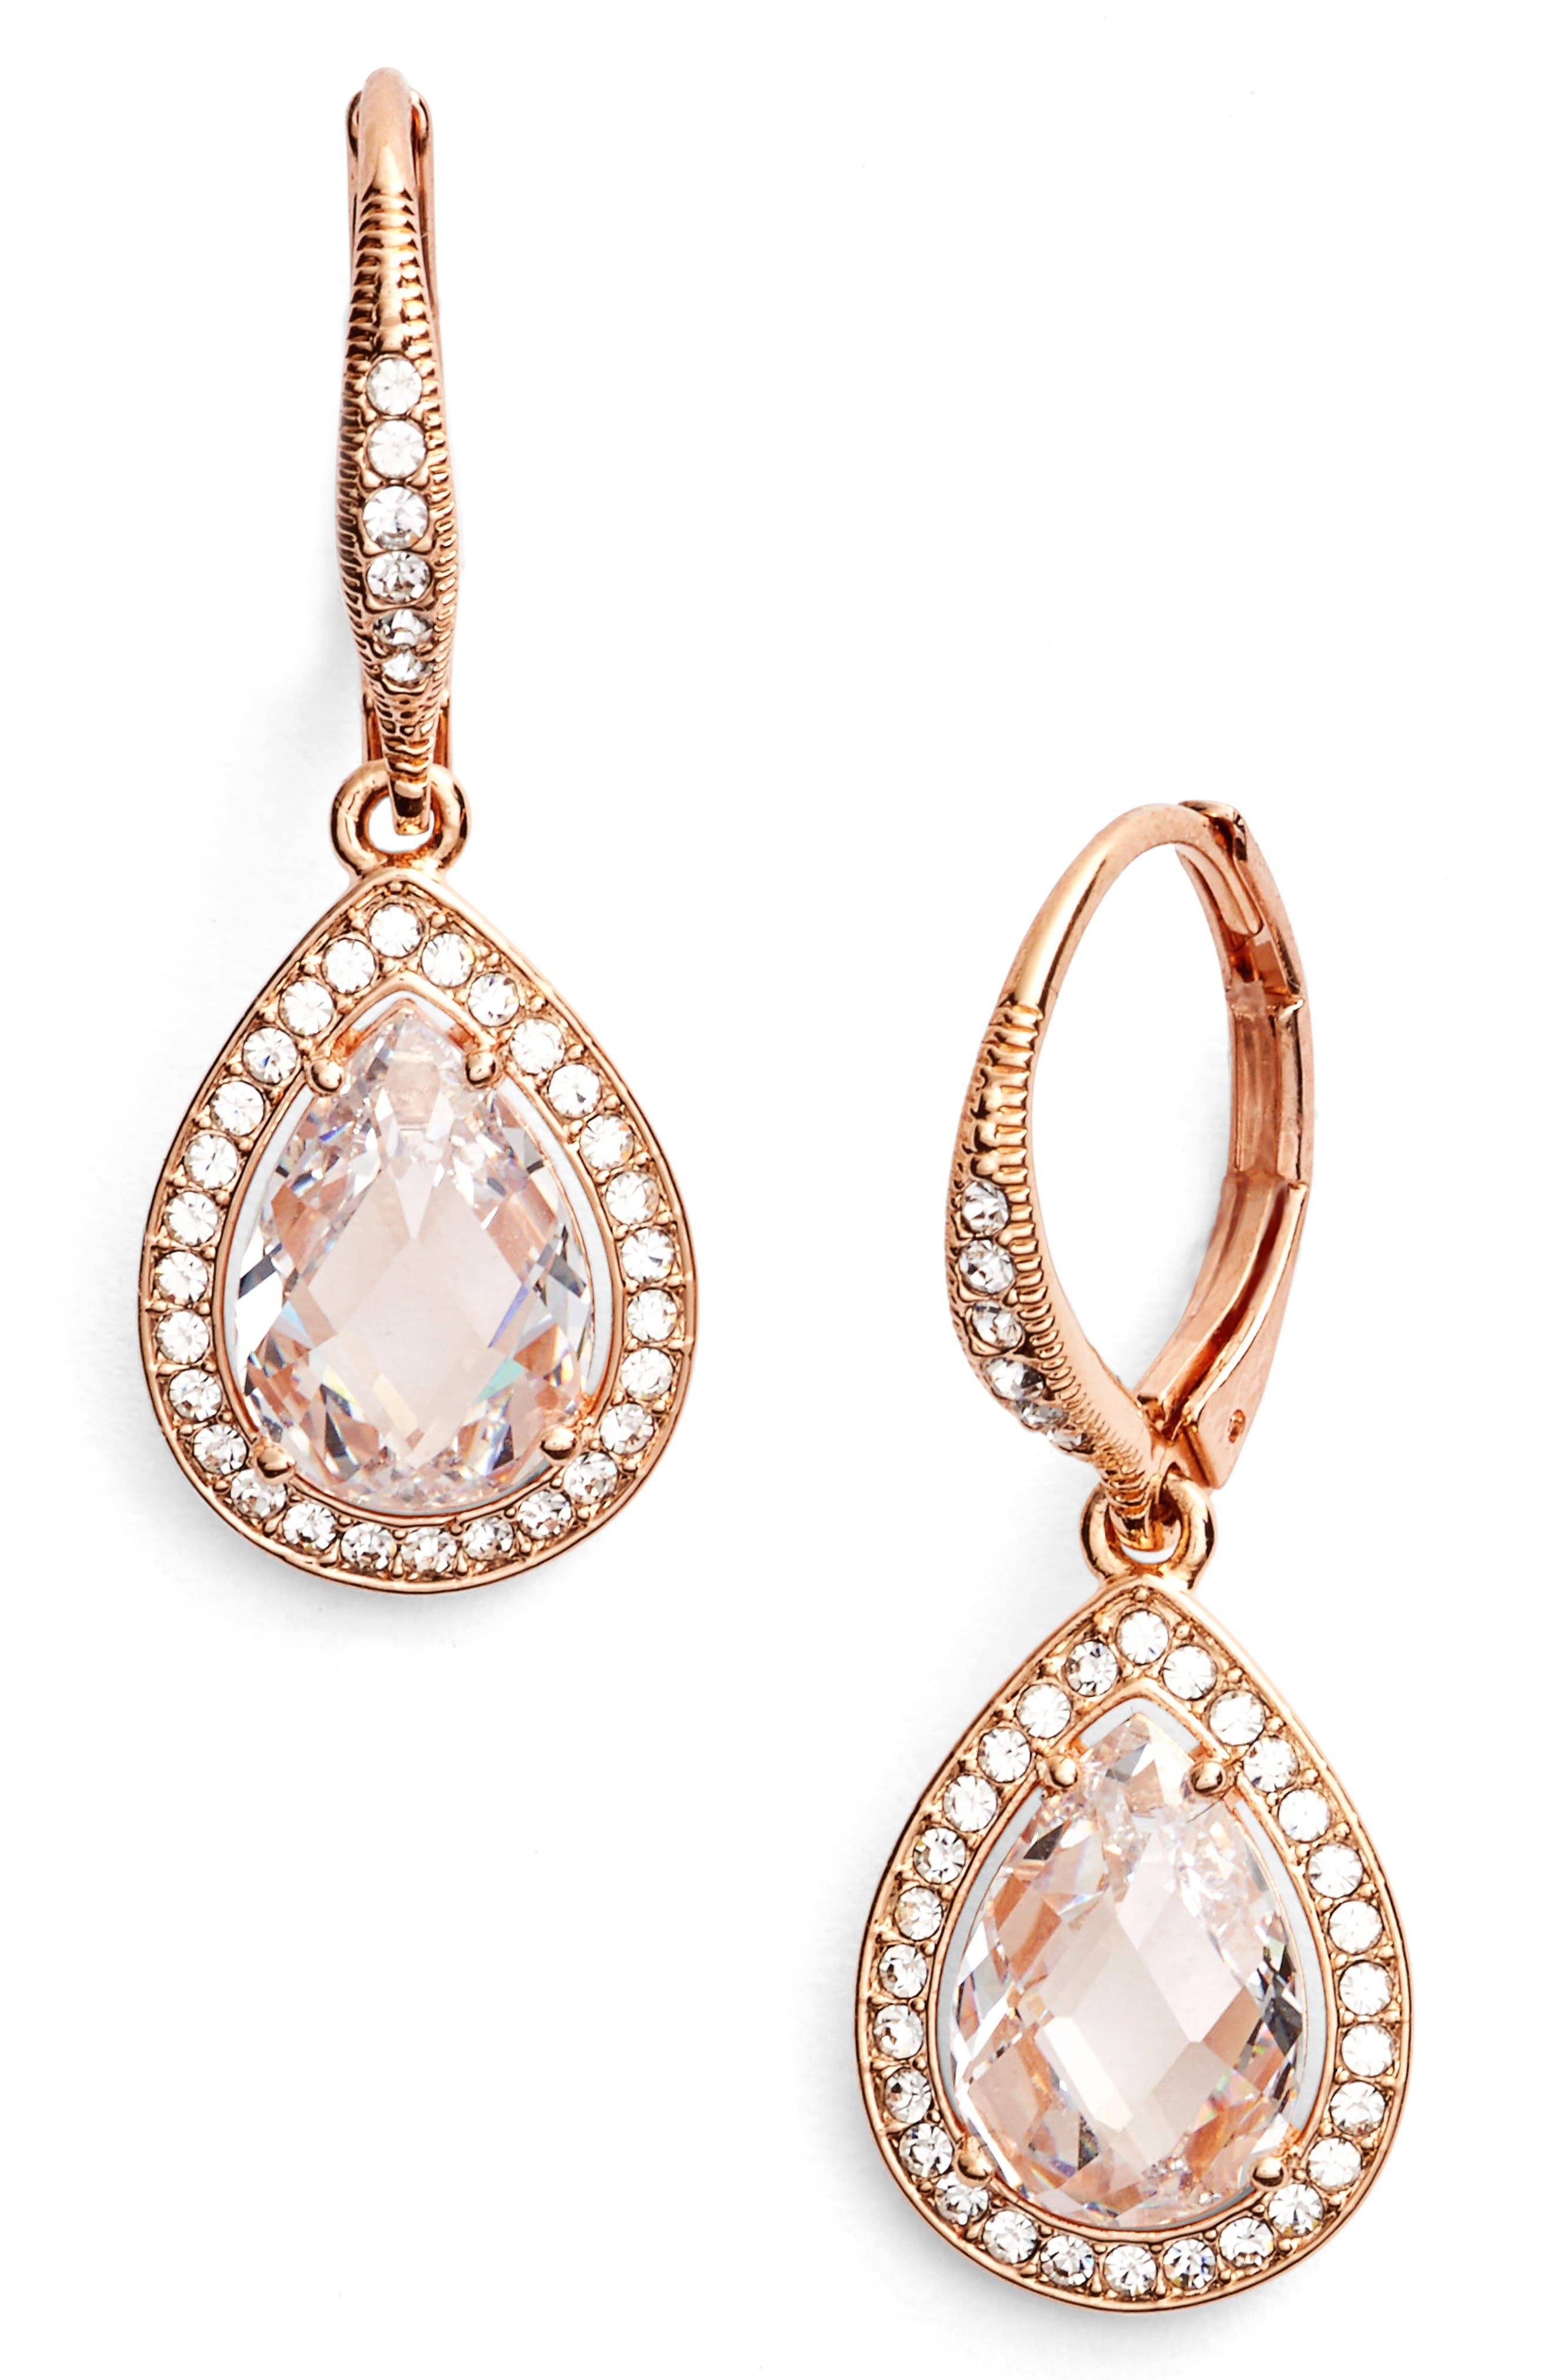 Main Image - Nadri Pear Drop Earrings (Nordstrom Exclusive)